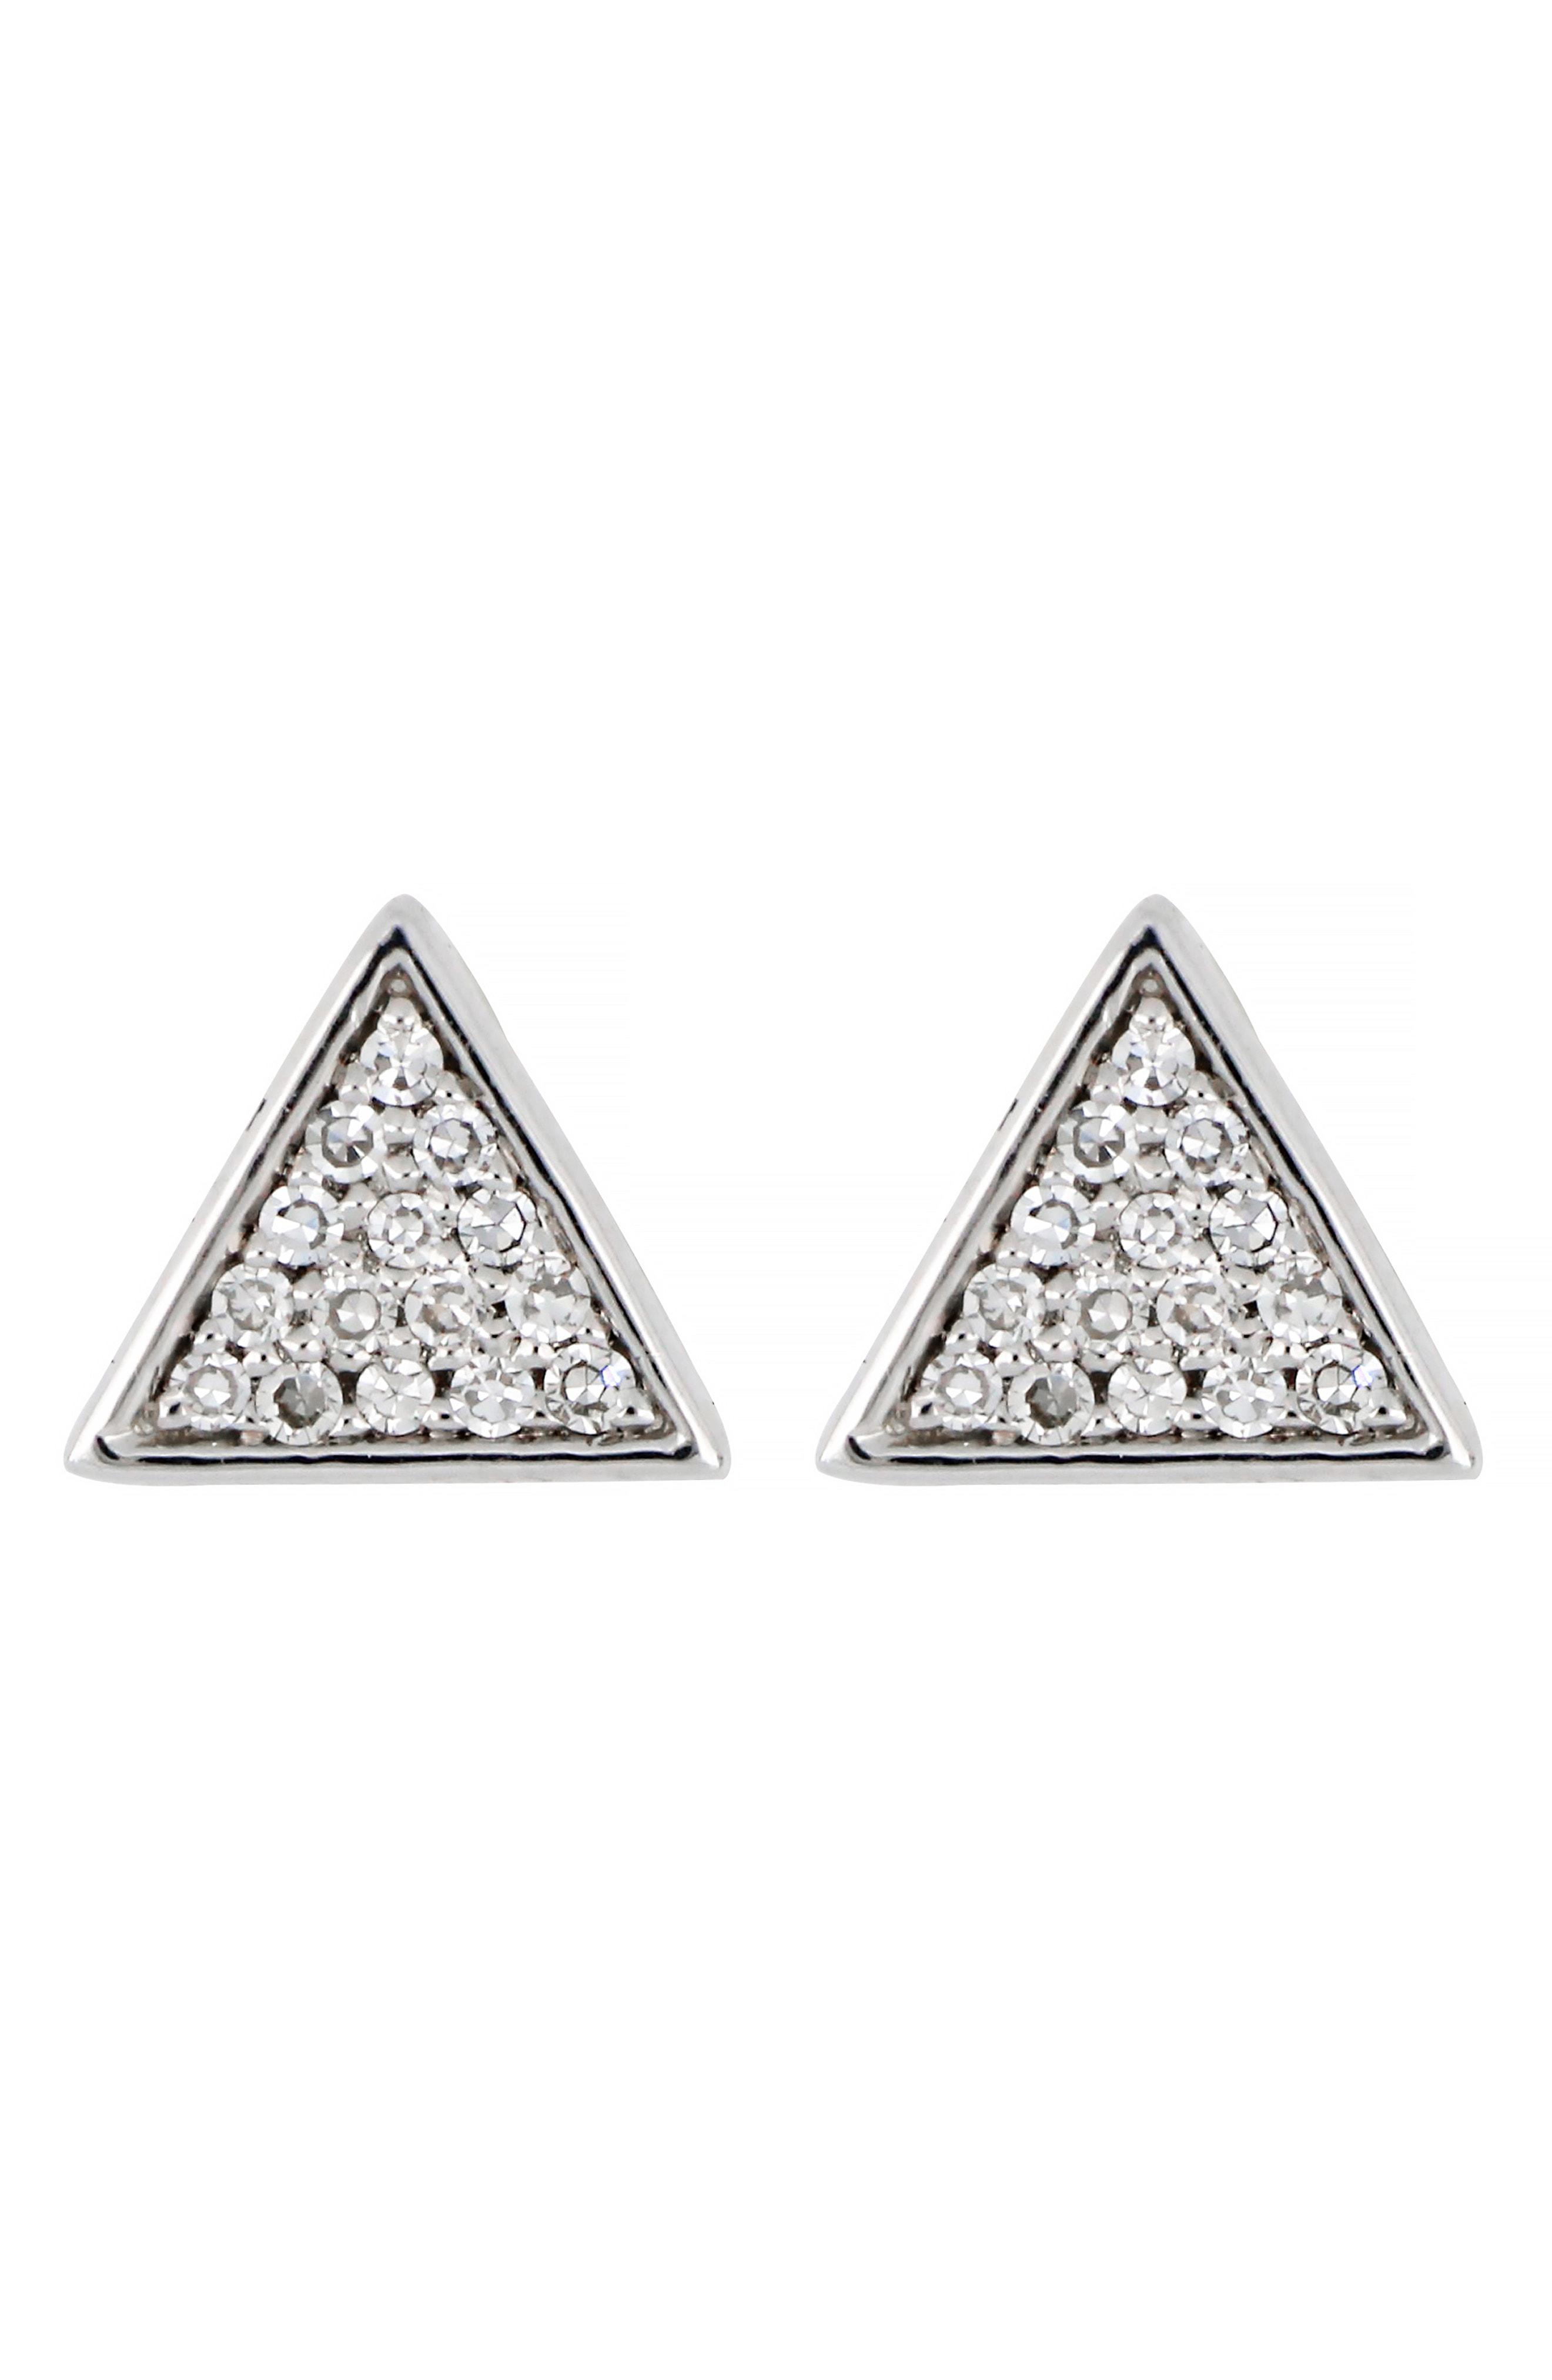 f72fb39fc CARRIERE JEWELRY. Women's Carriere Diamond Pave Medium Triangle Earrings ...